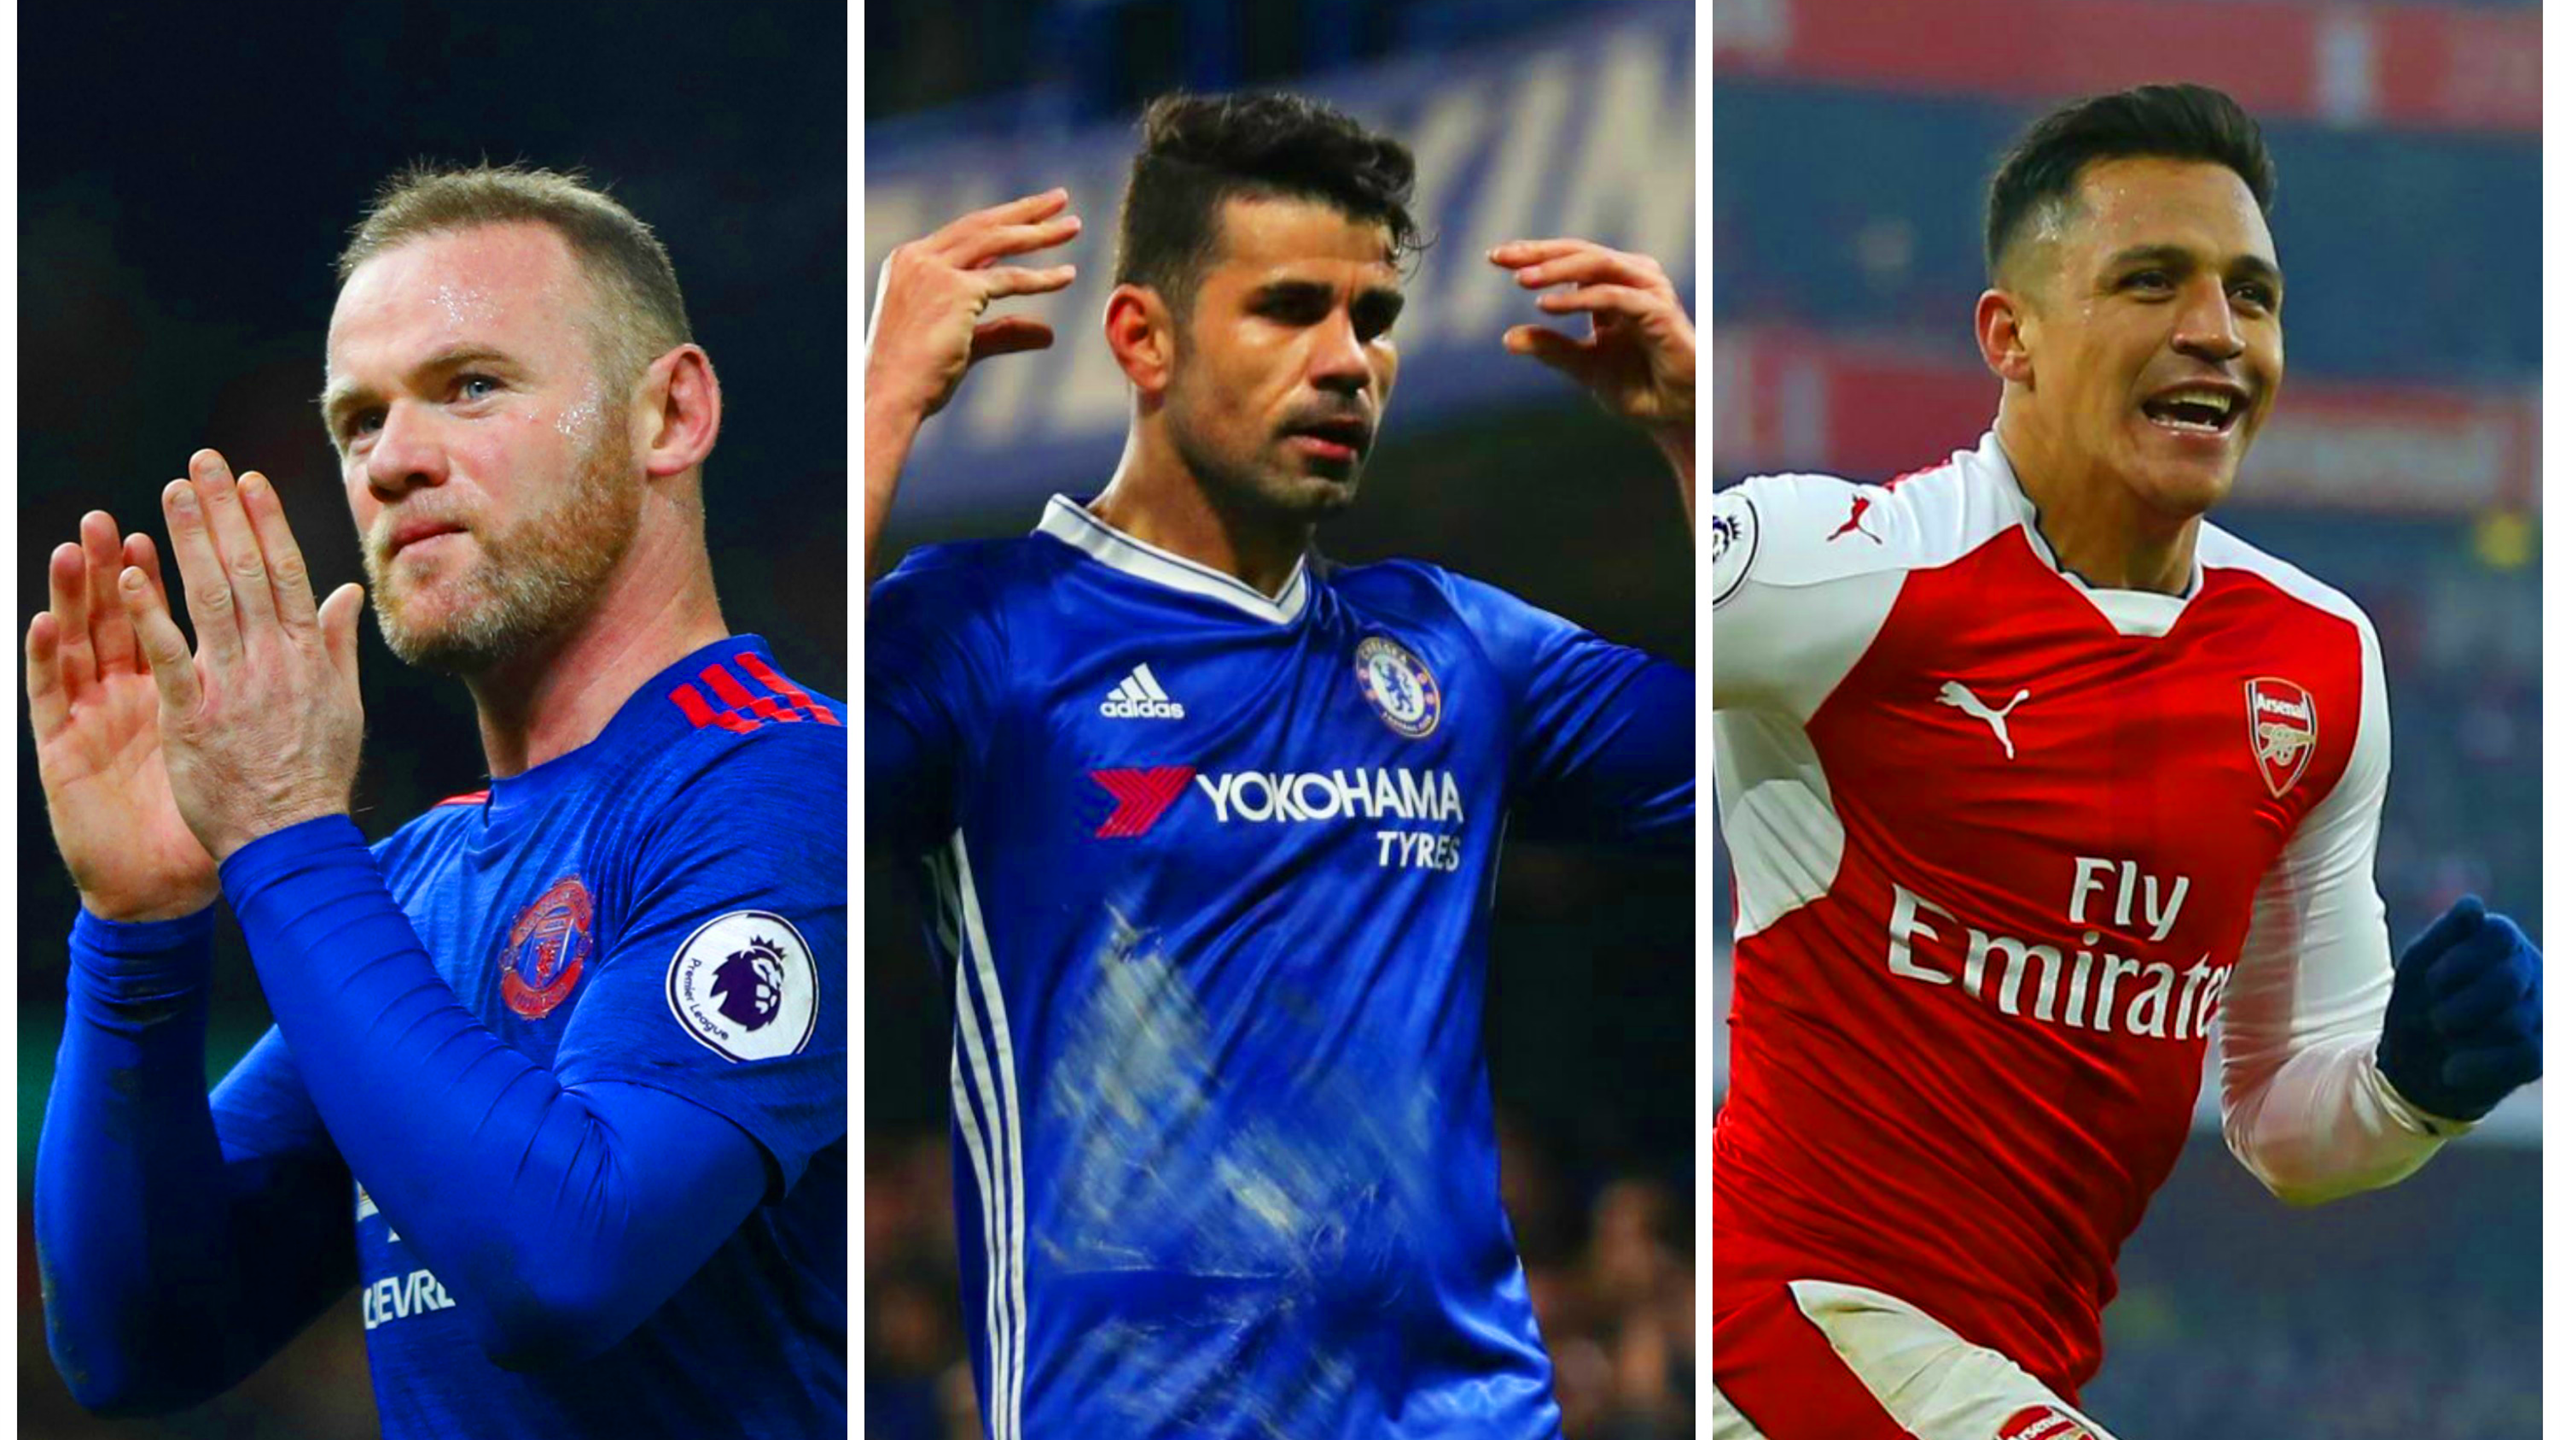 Wayne Rooney, Diego Costa and Alexis Sanchez